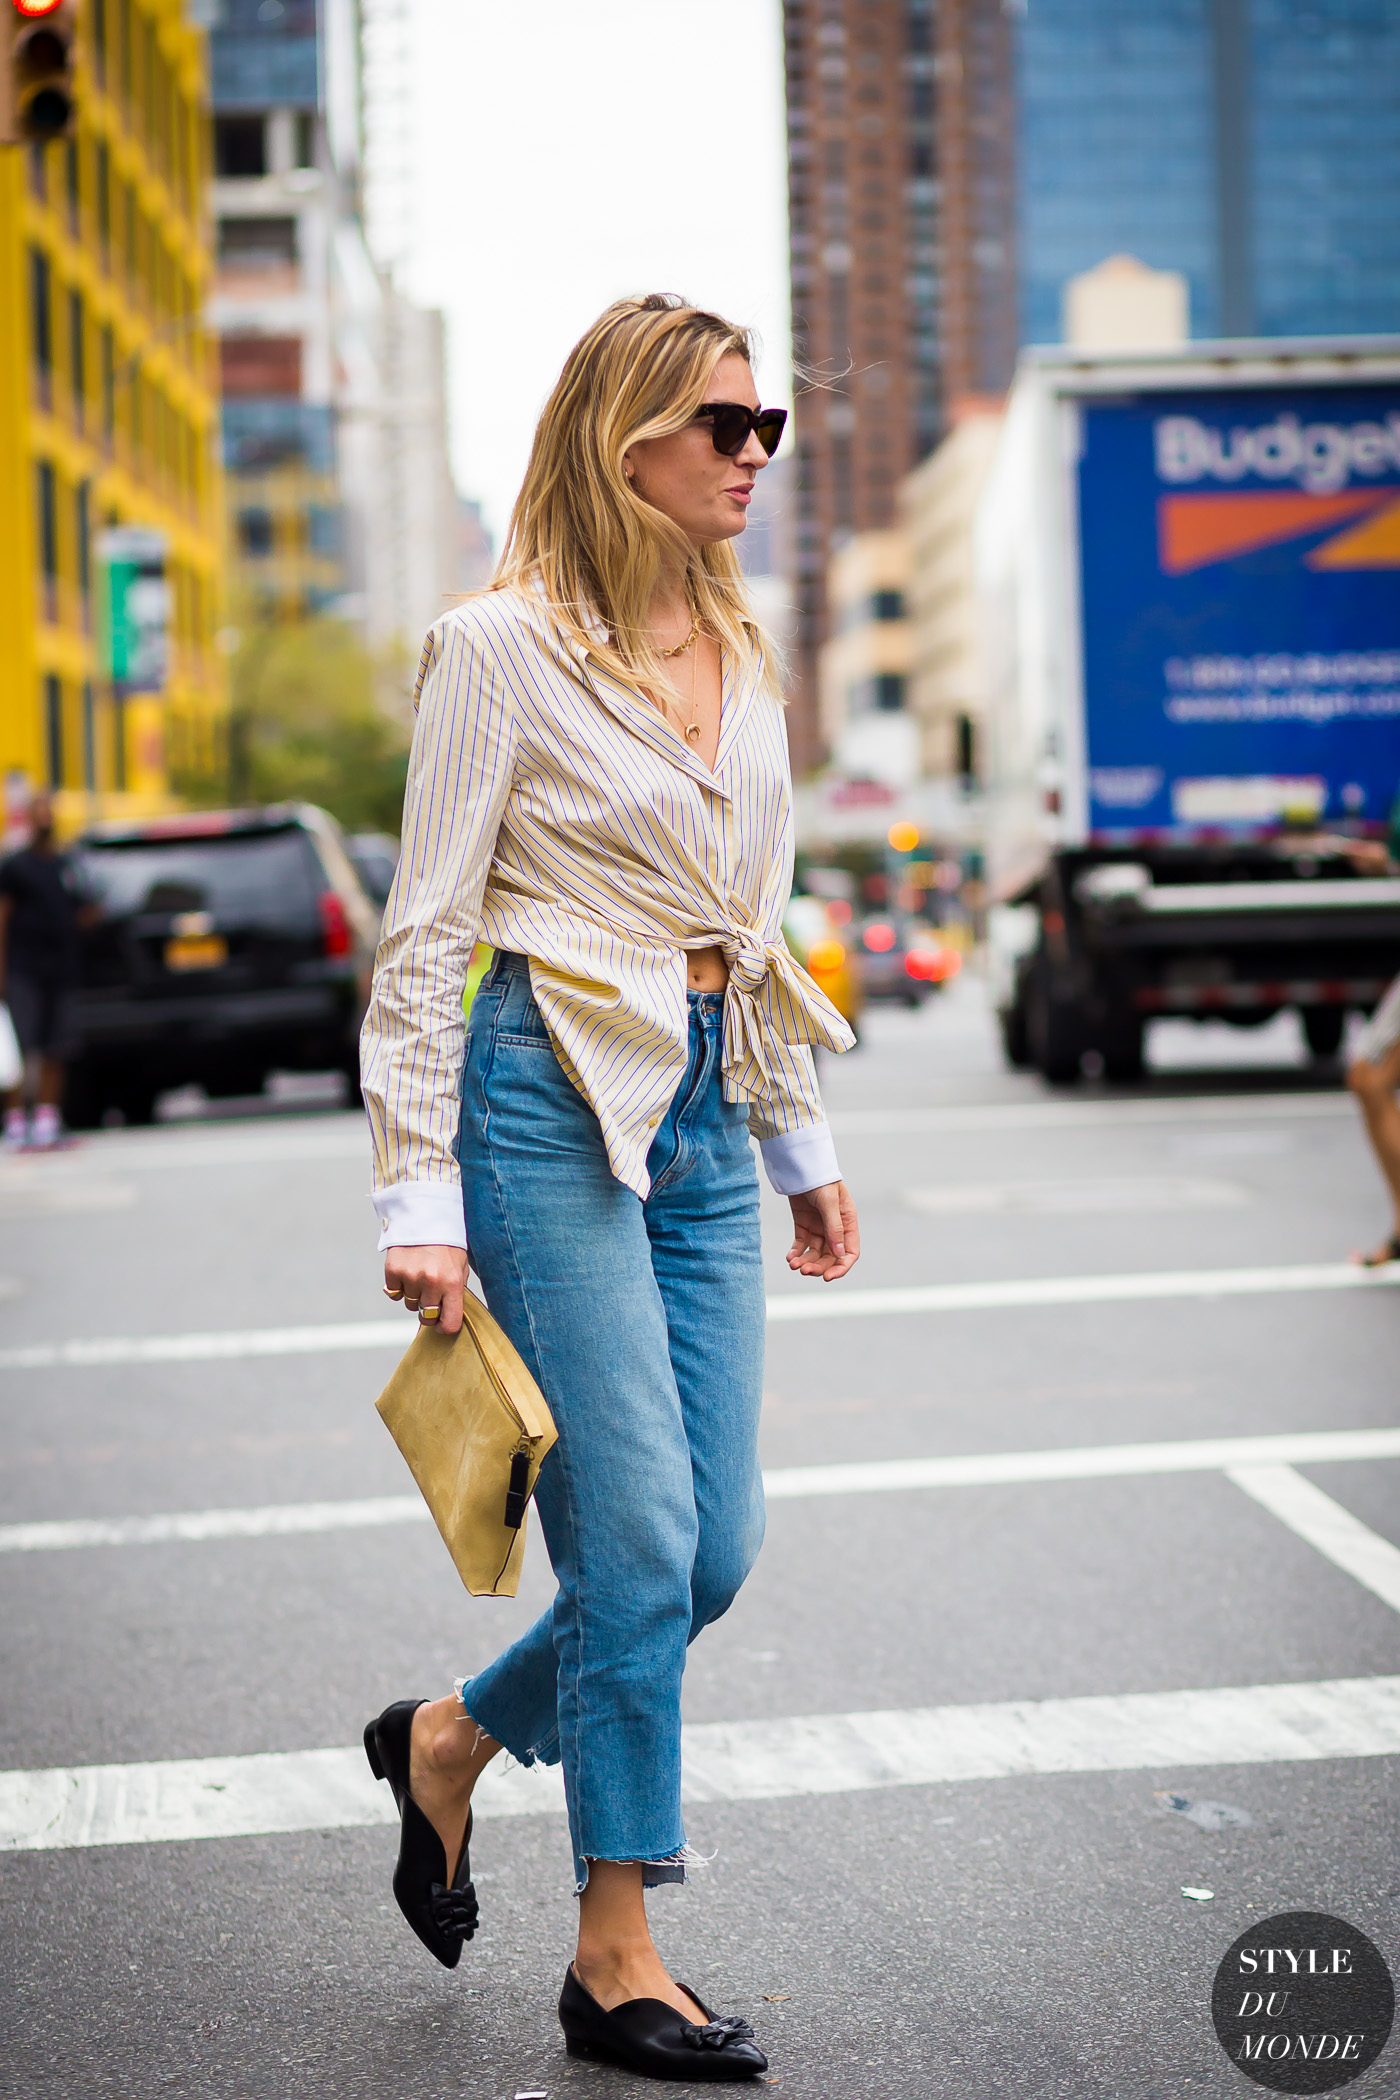 Camille Charriere Street Style Street Fashion Streetsnaps by STYLEDUMONDE Street Style Fashion Photography